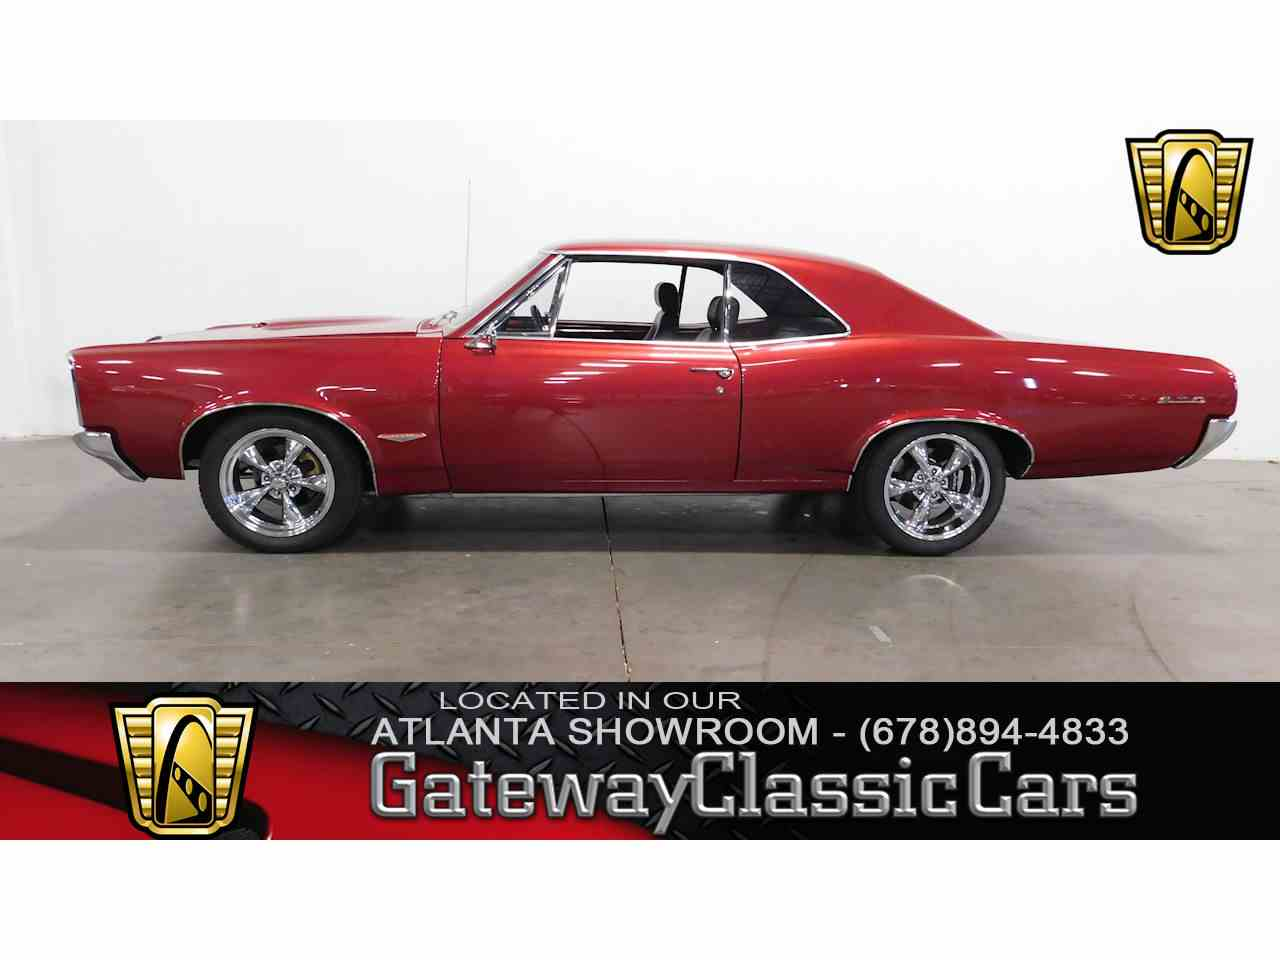 Large Picture of Classic '66 Pontiac GTO located in Georgia - $74,000.00 Offered by Gateway Classic Cars - Atlanta - MEMK